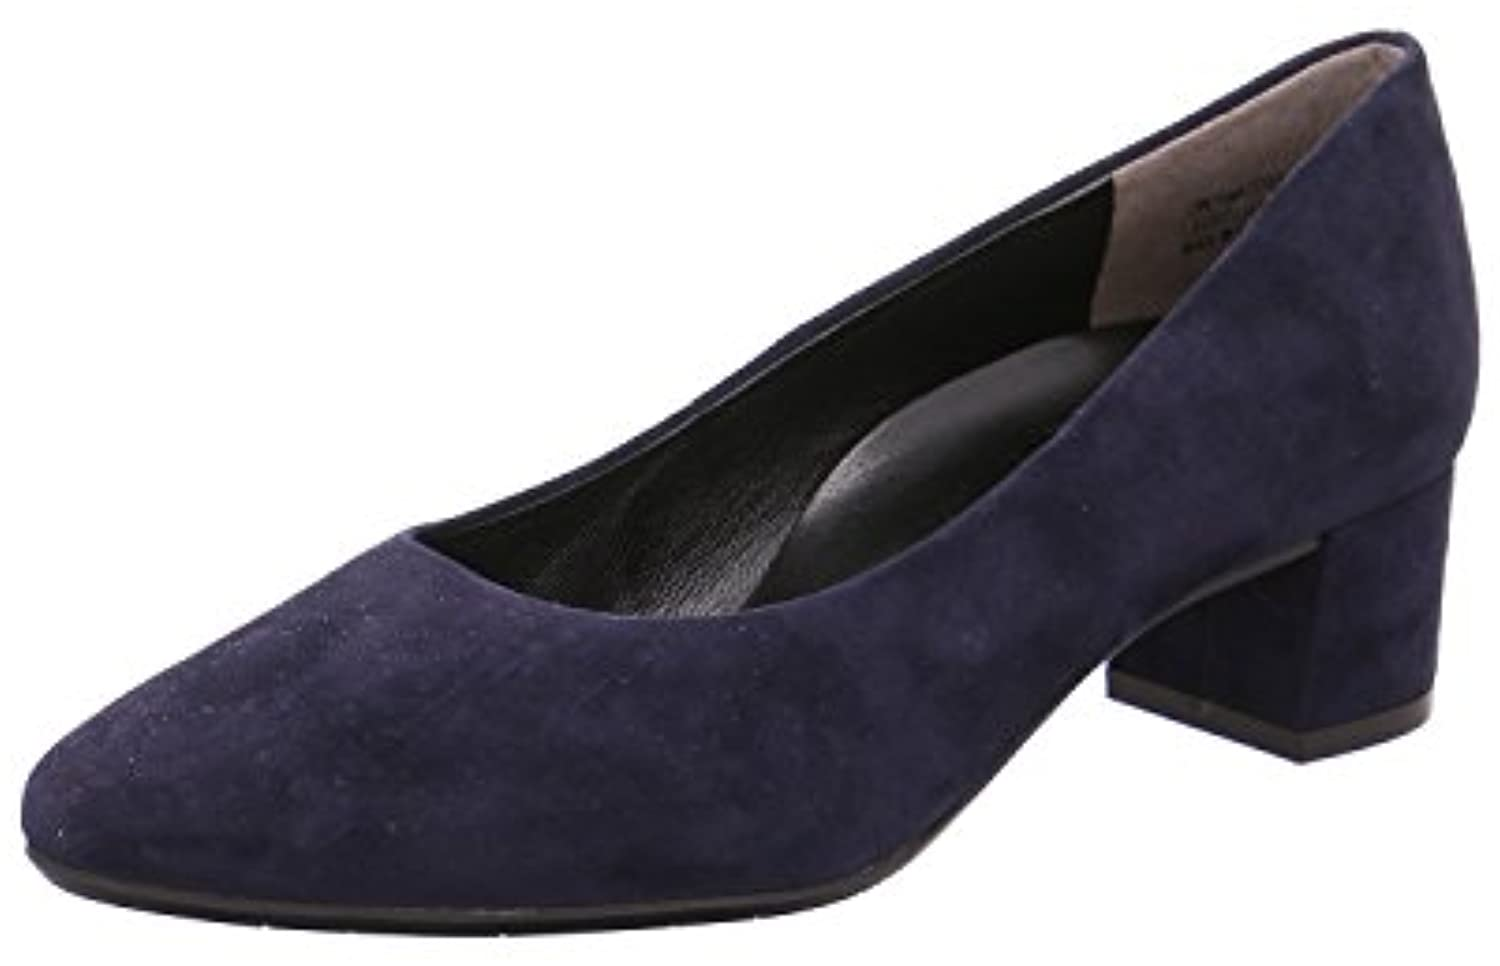 Paul Green Damen Pumps Pumps 3580-021 9 Blau 301635